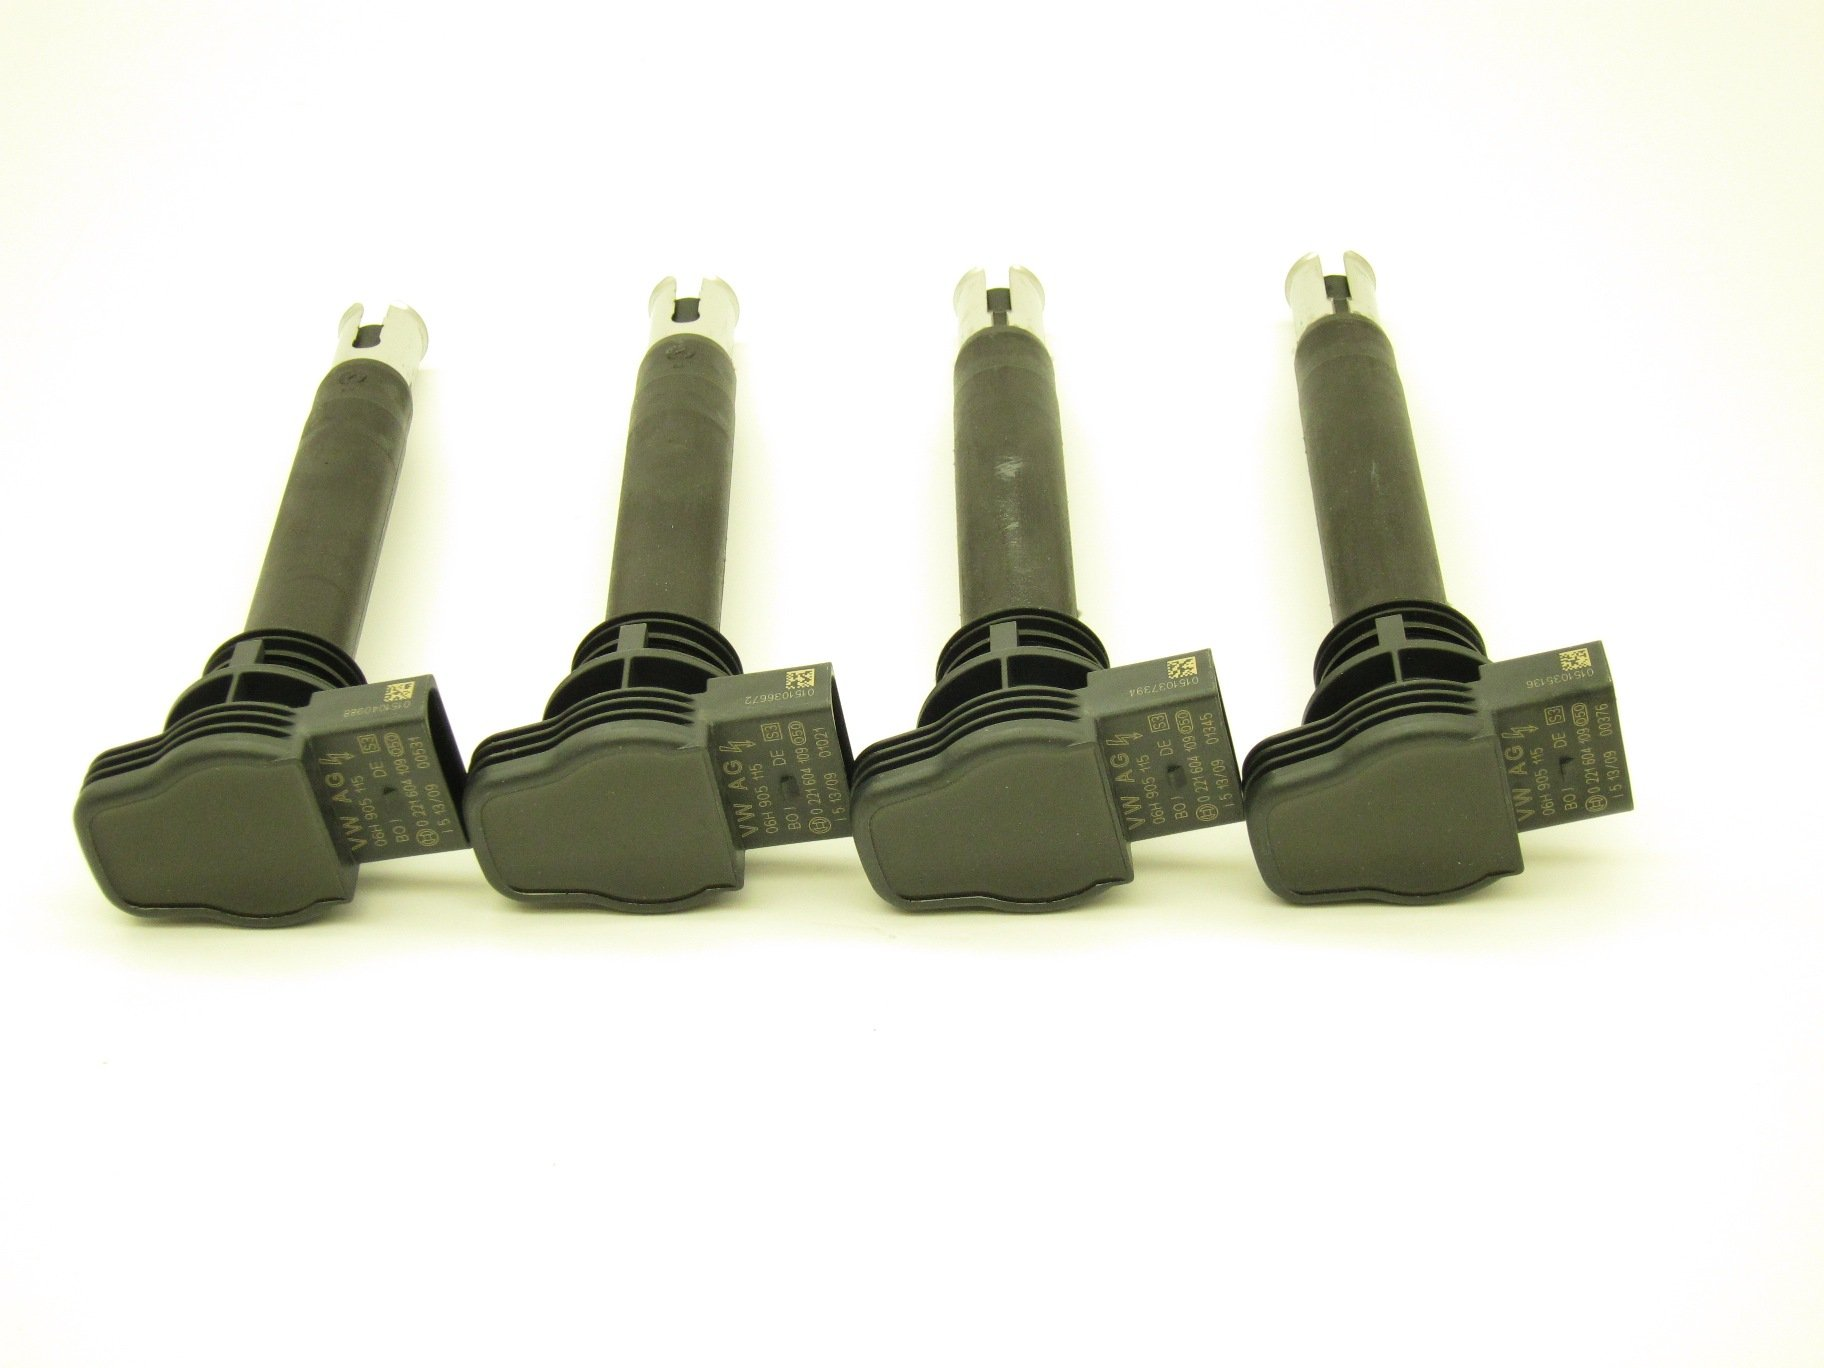 06H-905-115 2.0T Ignition Coil Set of 4 by Volkswagen